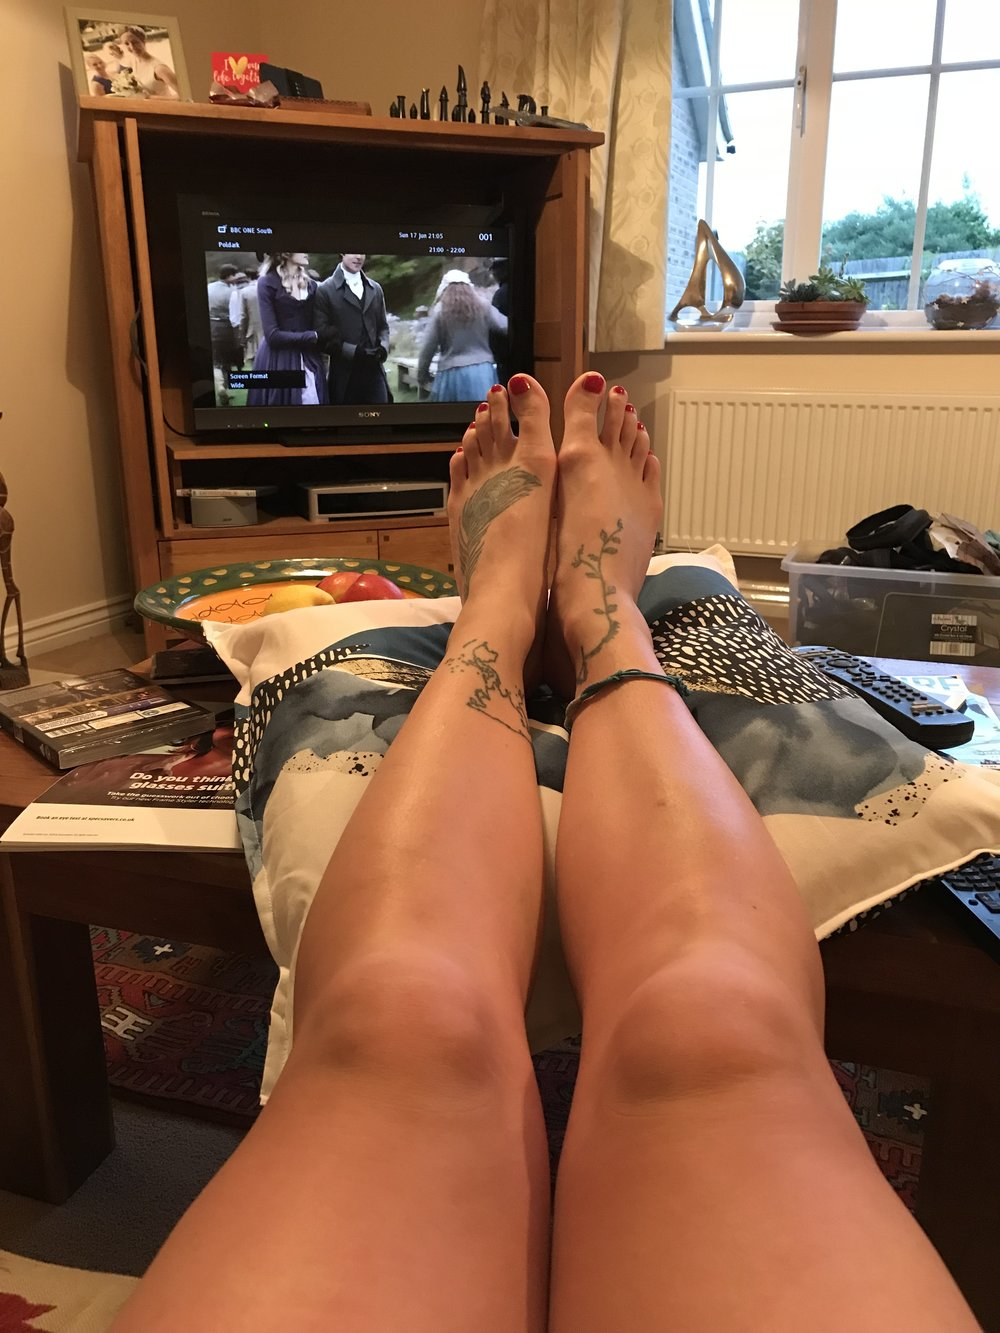 Feet up finally